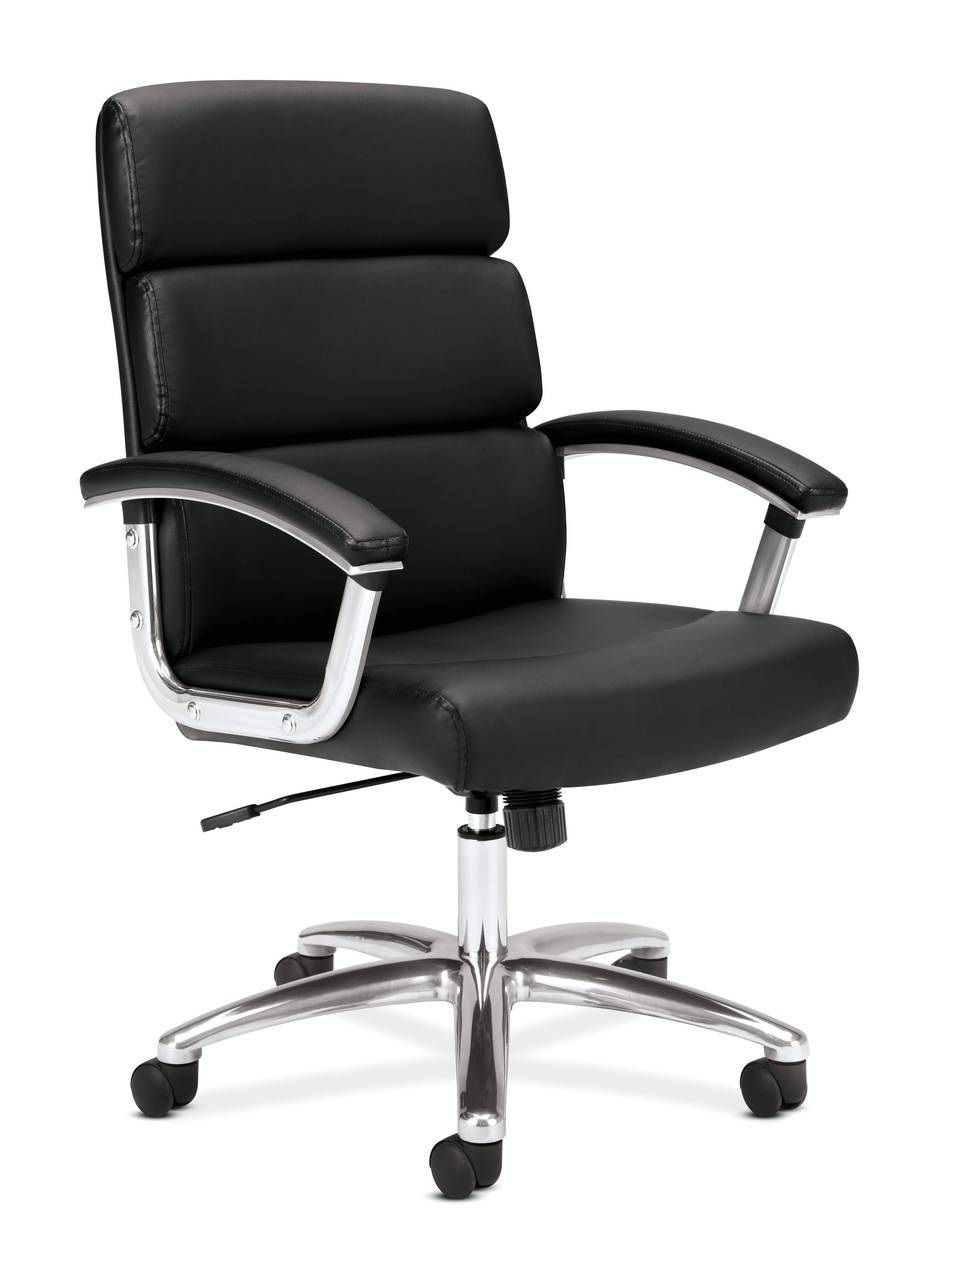 Chairs at Office Depot - Country Home Office Furniture Check more at on ergonomic office chairs, wendy's chairs, dillard's chairs, aliexpress chairs, comfortable office chairs, la-z-boy furniture chairs, office chairs for bad backs, cheap office chairs, target chairs, big lots chairs, office max chairs, poppin chairs, home depot chairs, sams club chairs, jcpenney chairs, discount tire chairs, medical office chairs, kmart chairs, ikea chairs, national office furniture chairs,